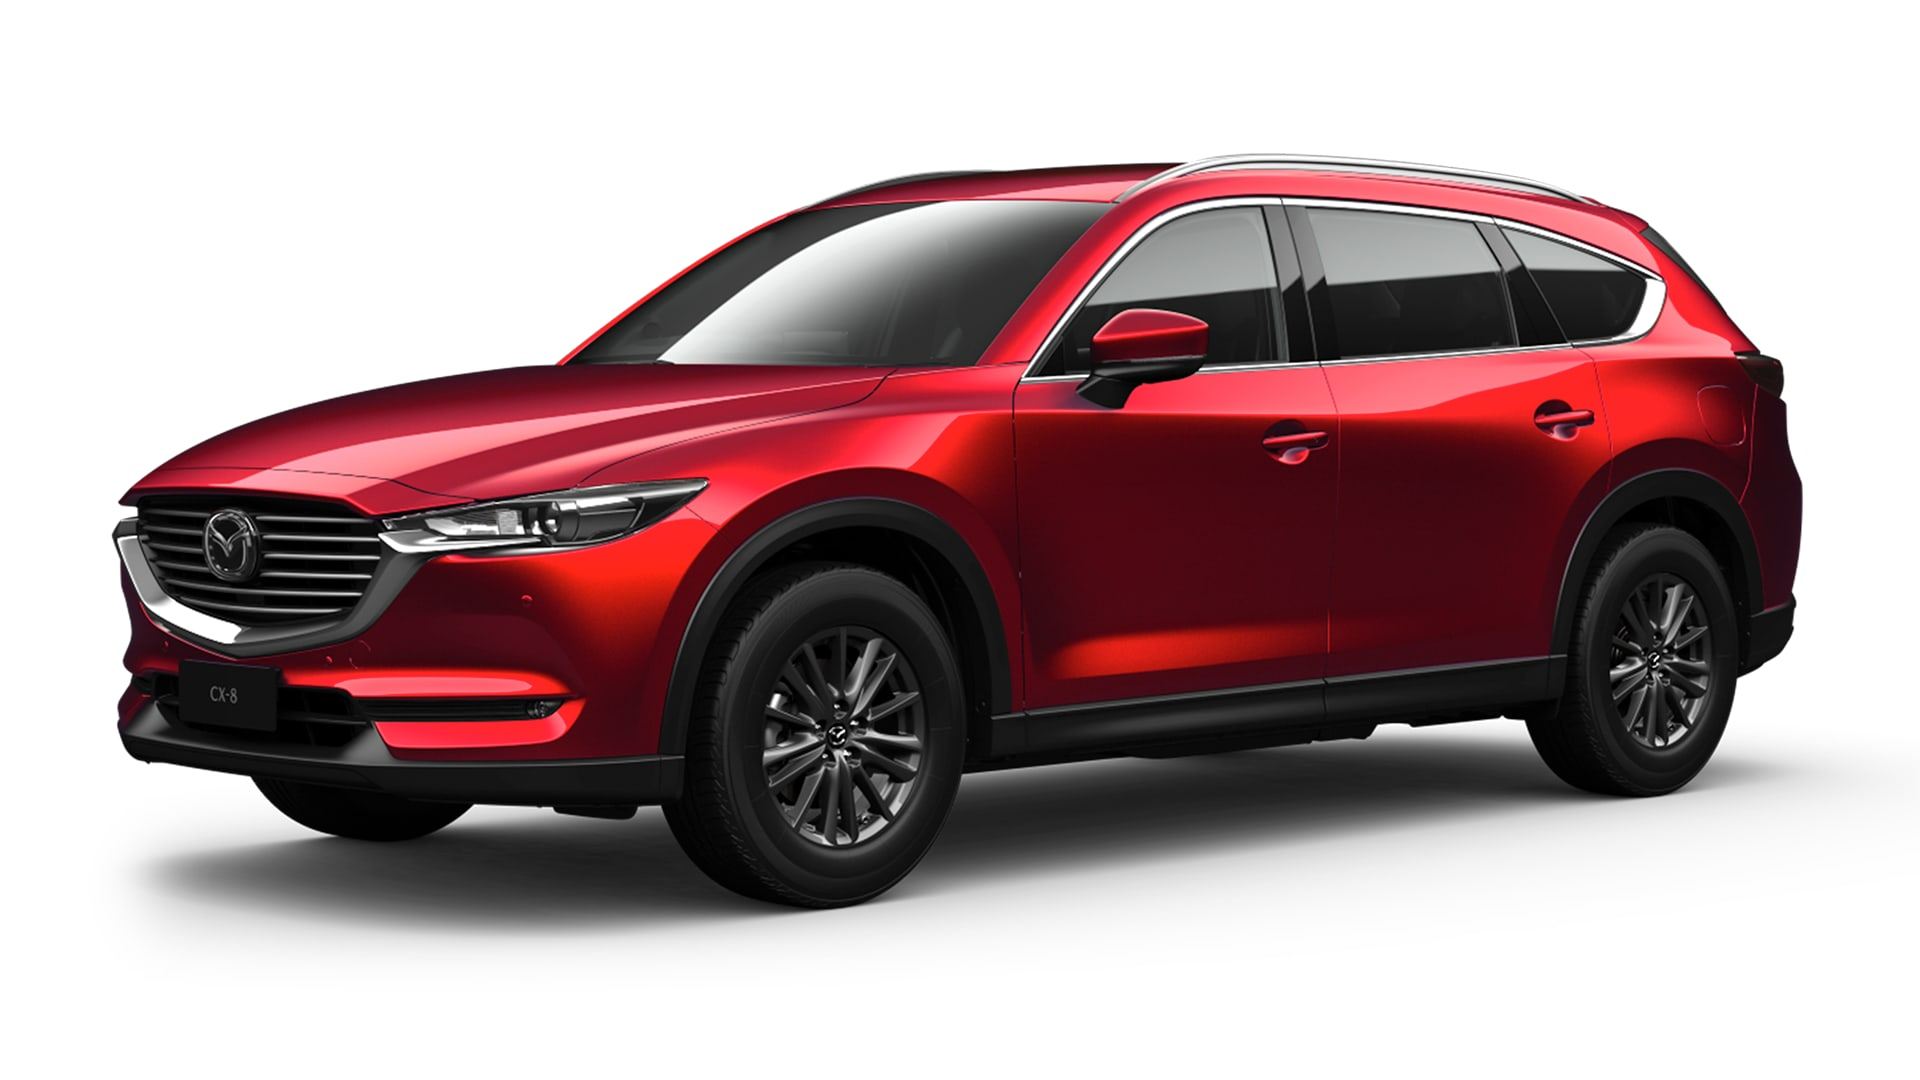 /vehicles/showrooms/models/mazda-cx-8